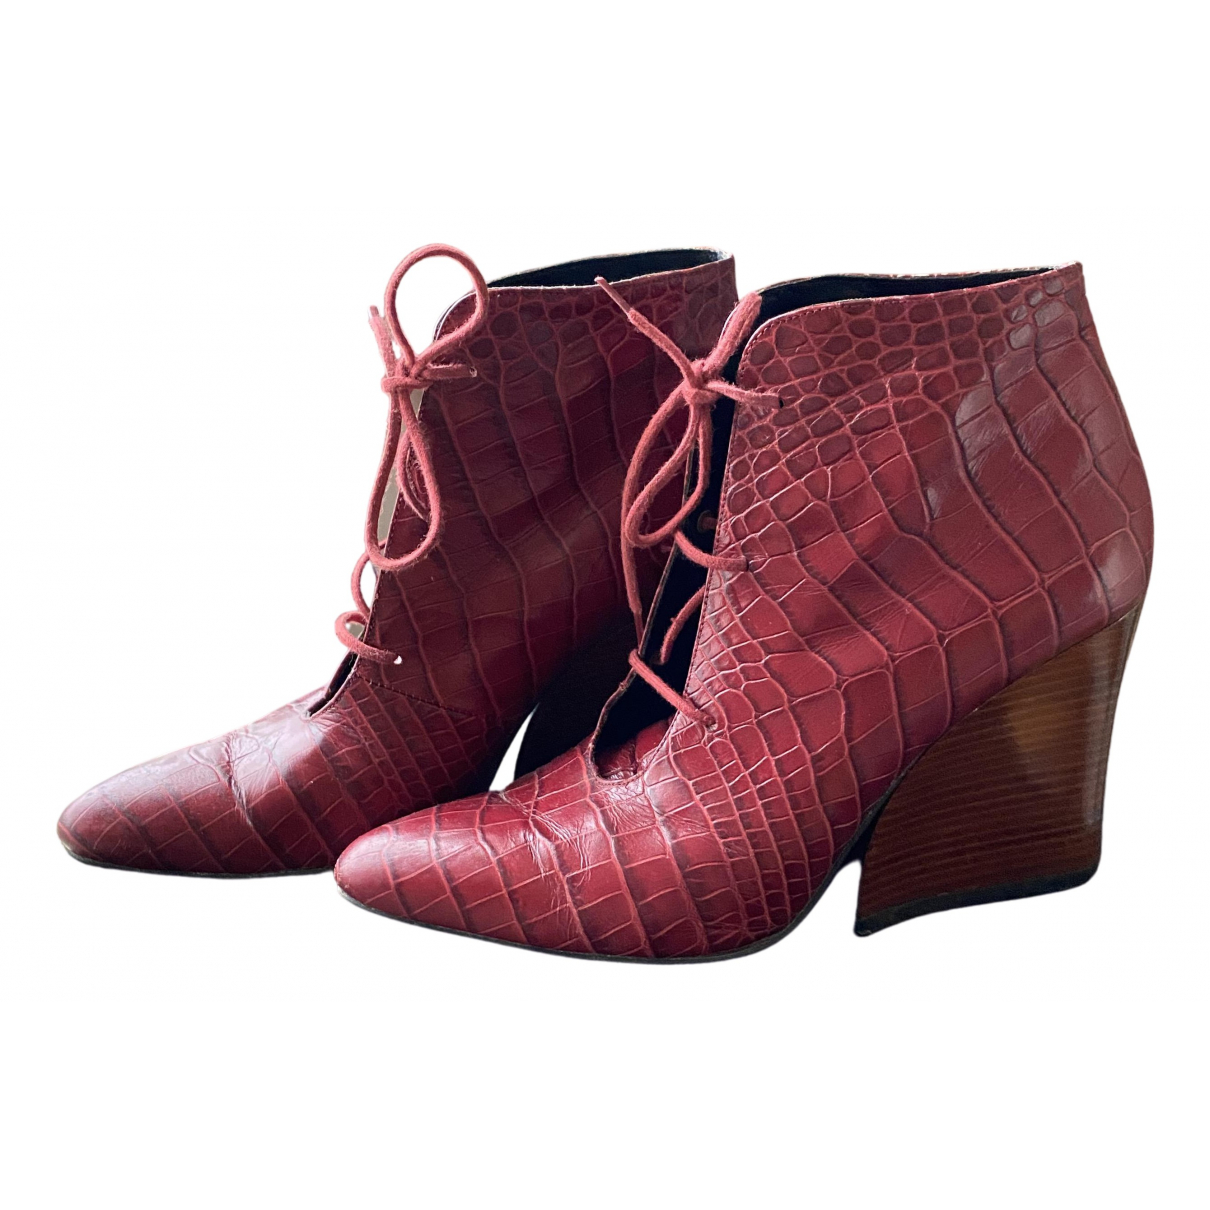 Robert Clergerie N Burgundy Leather Lace ups for Women 36.5 EU